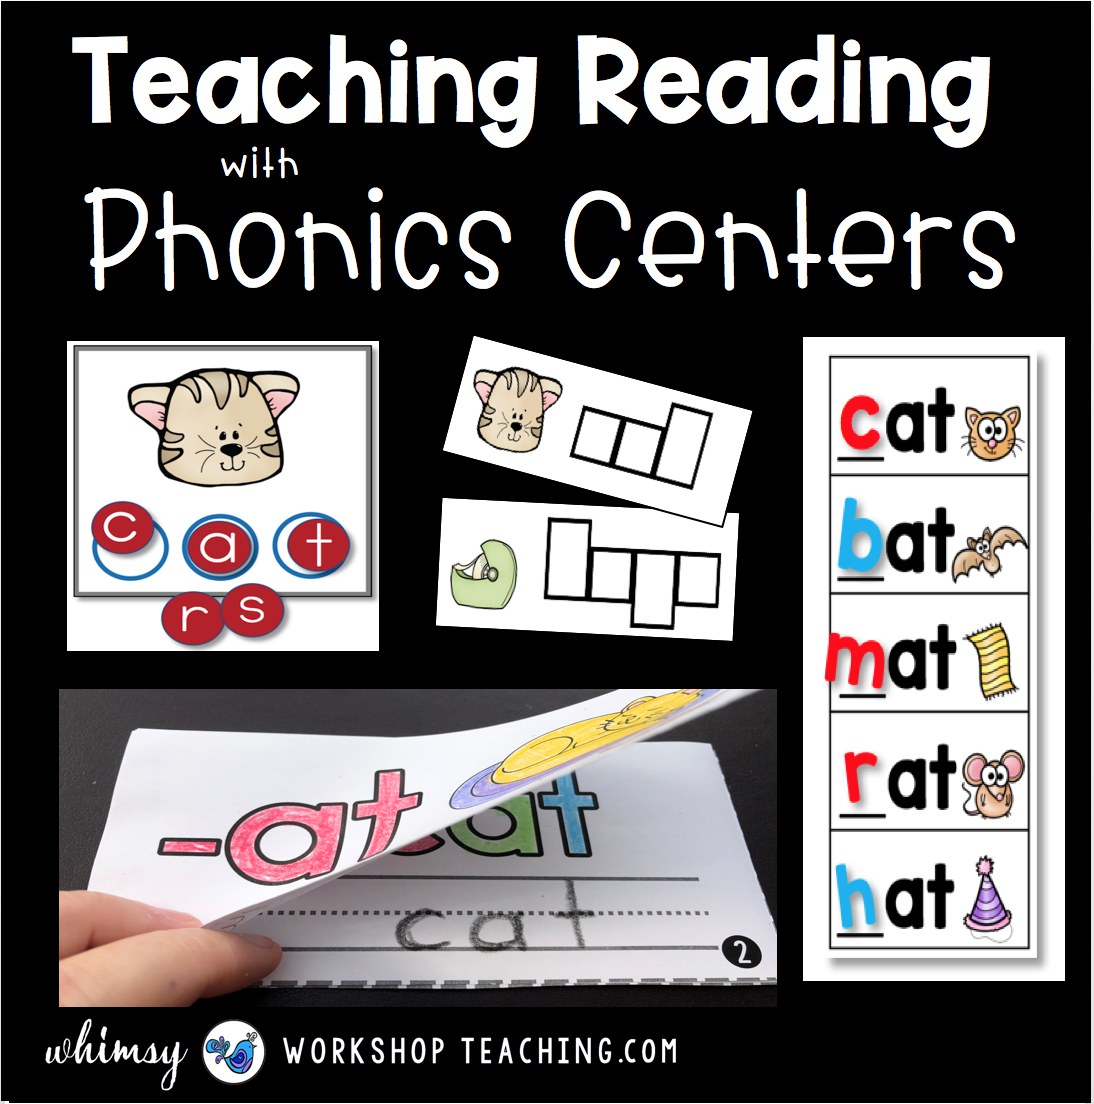 Teaching reading with phonics centers Whimsy Workshop Teaching